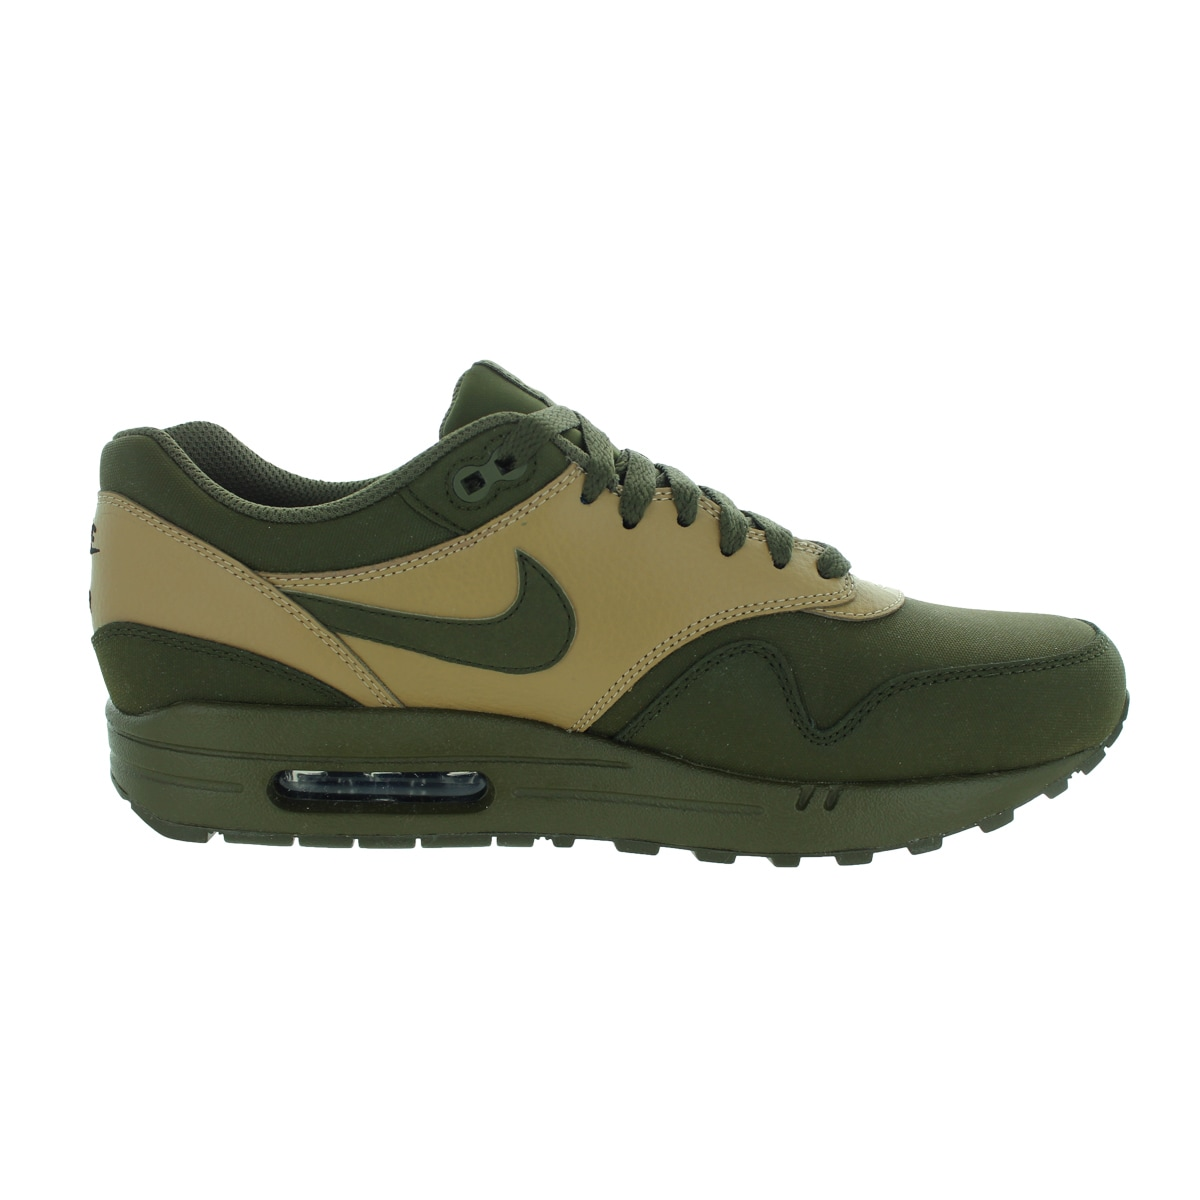 detailed pictures f06c3 403a0 Shop Nike Men s Air Max 1 Ltr Premium Dark Loden Drk Ldn Dsrt Cm Black  Running Shoe - Free Shipping Today - Overstock - 12329152